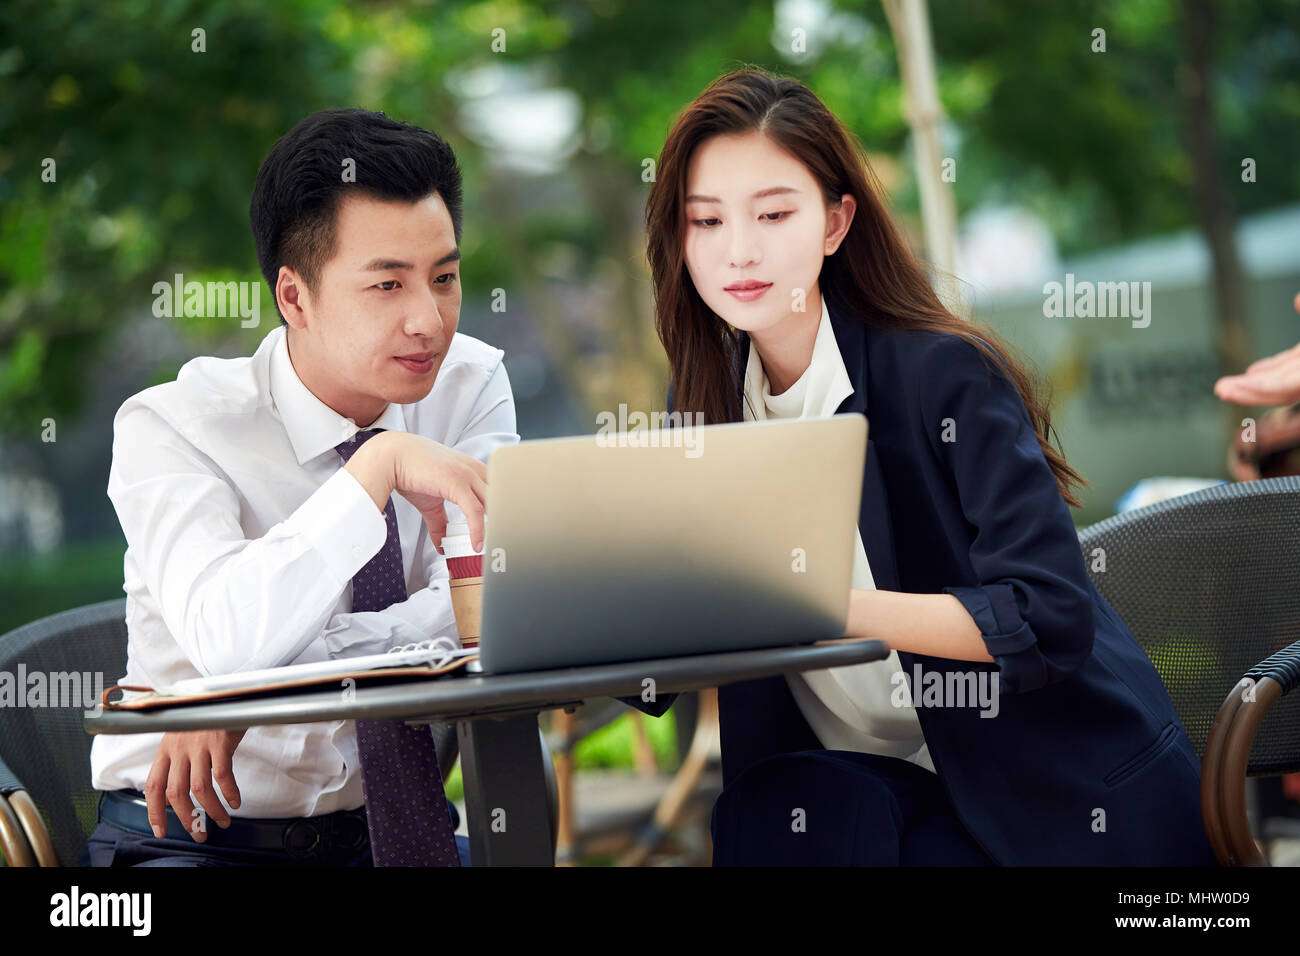 Business people use computers in the outdoor - Stock Image